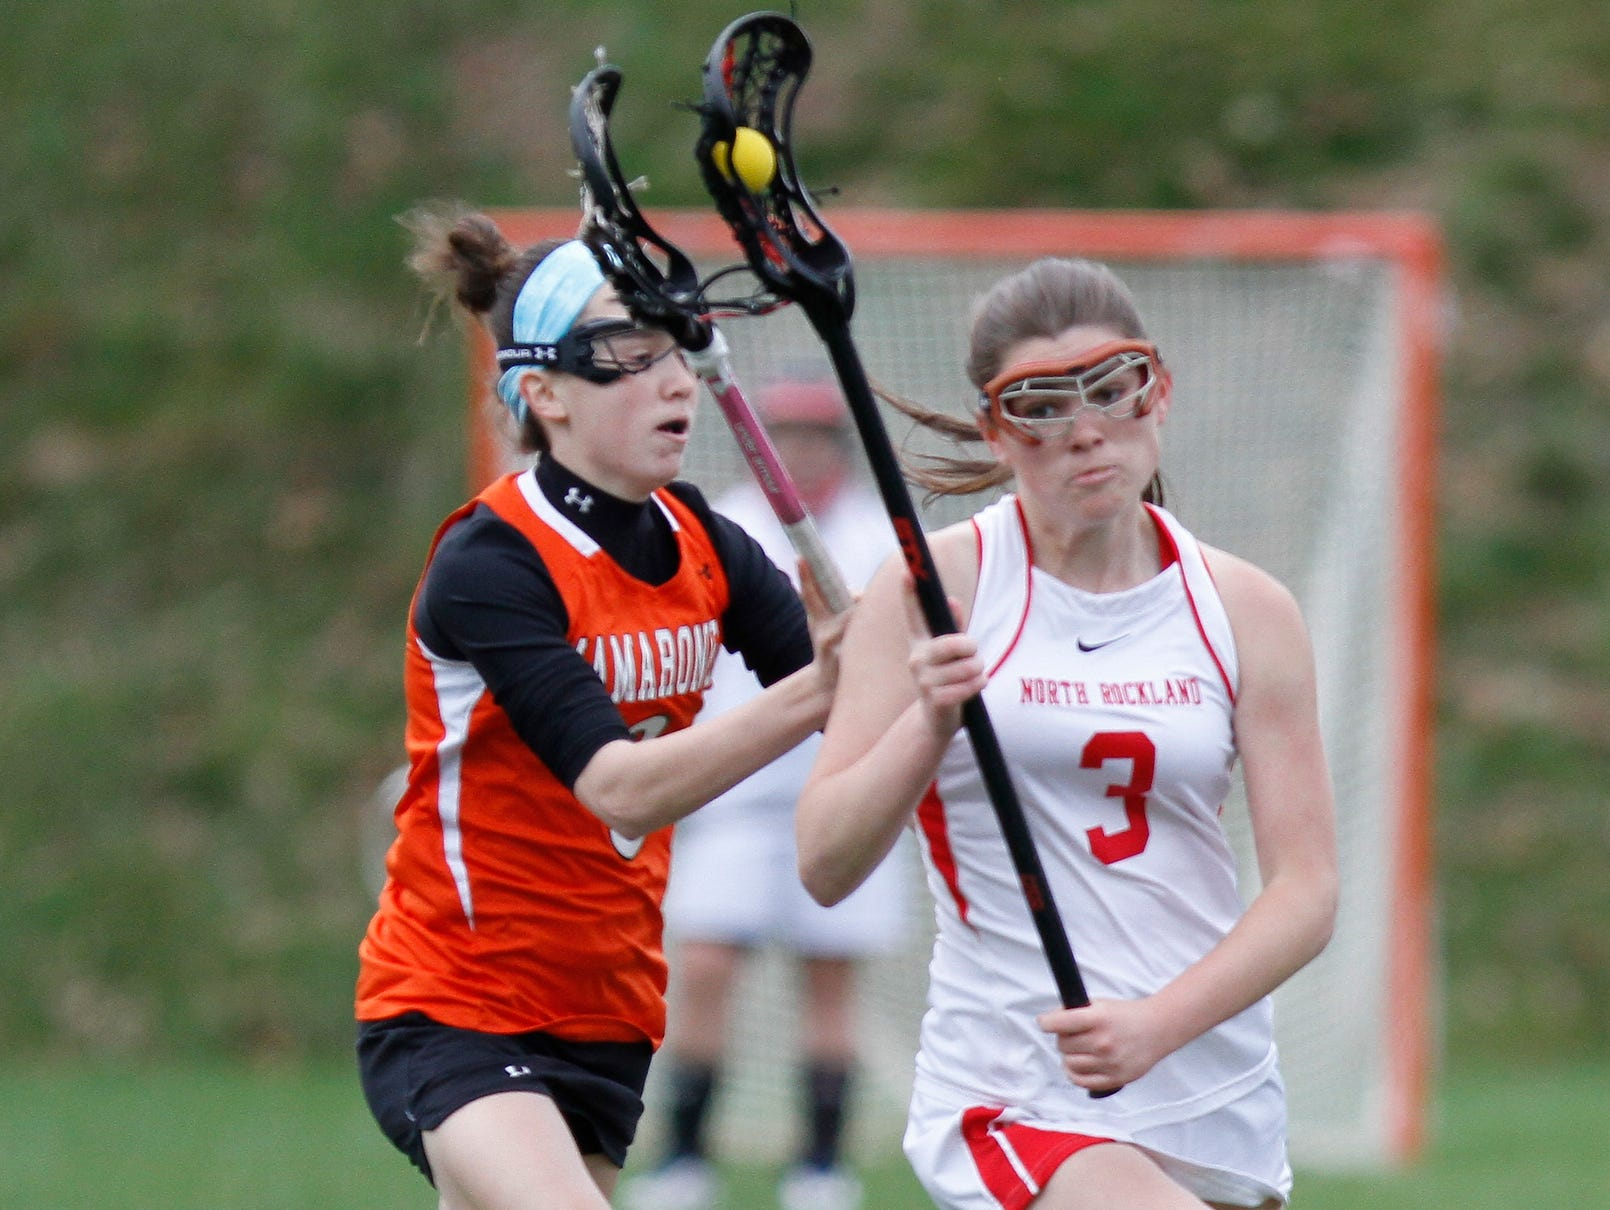 North Rockland's Jenna Fox (3) stick-handles the ball around Mamaroneck's Madeline Rioedan (3) during a girls lacrosse game at North Rockland High School in Thiells on Saturday, April 02, 2016.